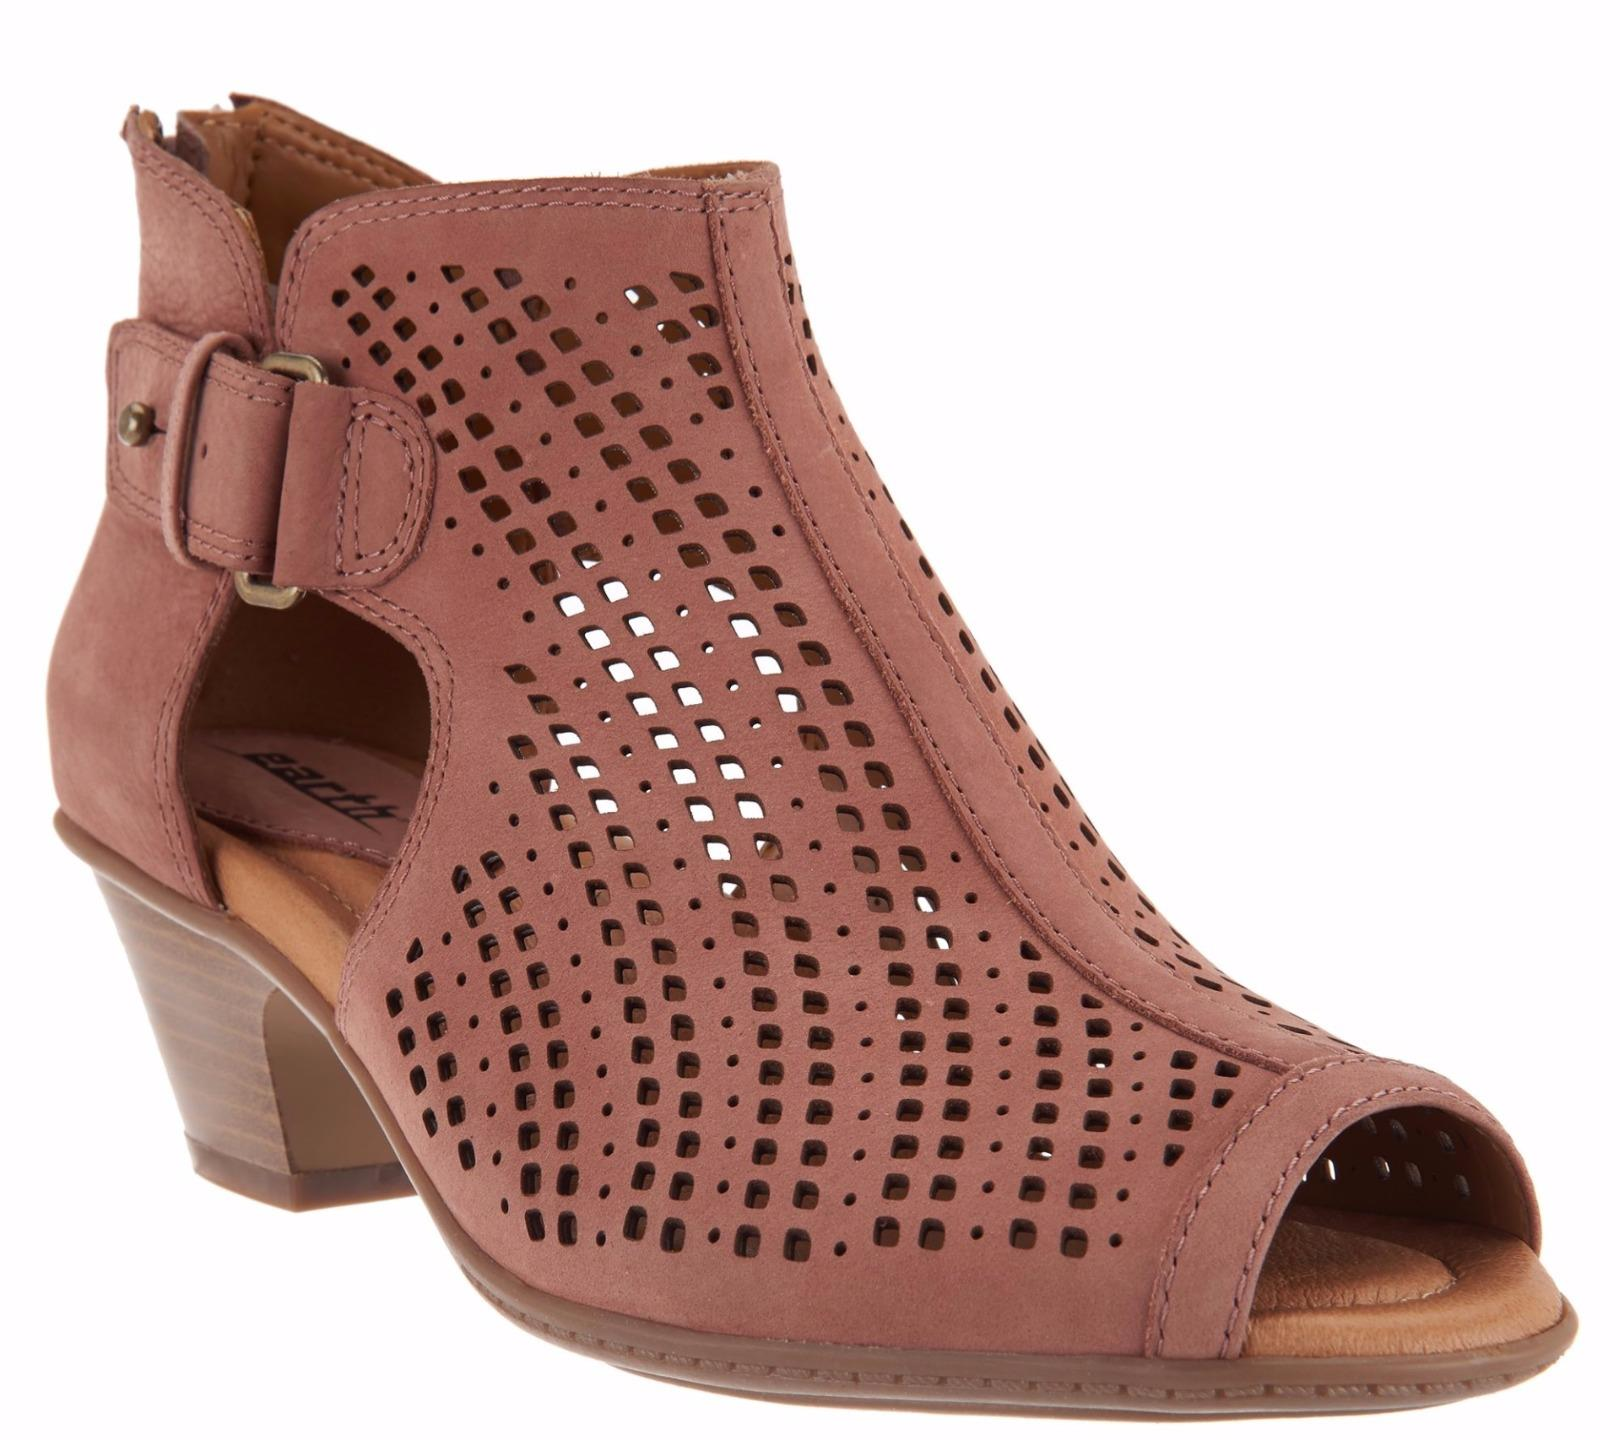 Nubuck Leather Perforated Shoes